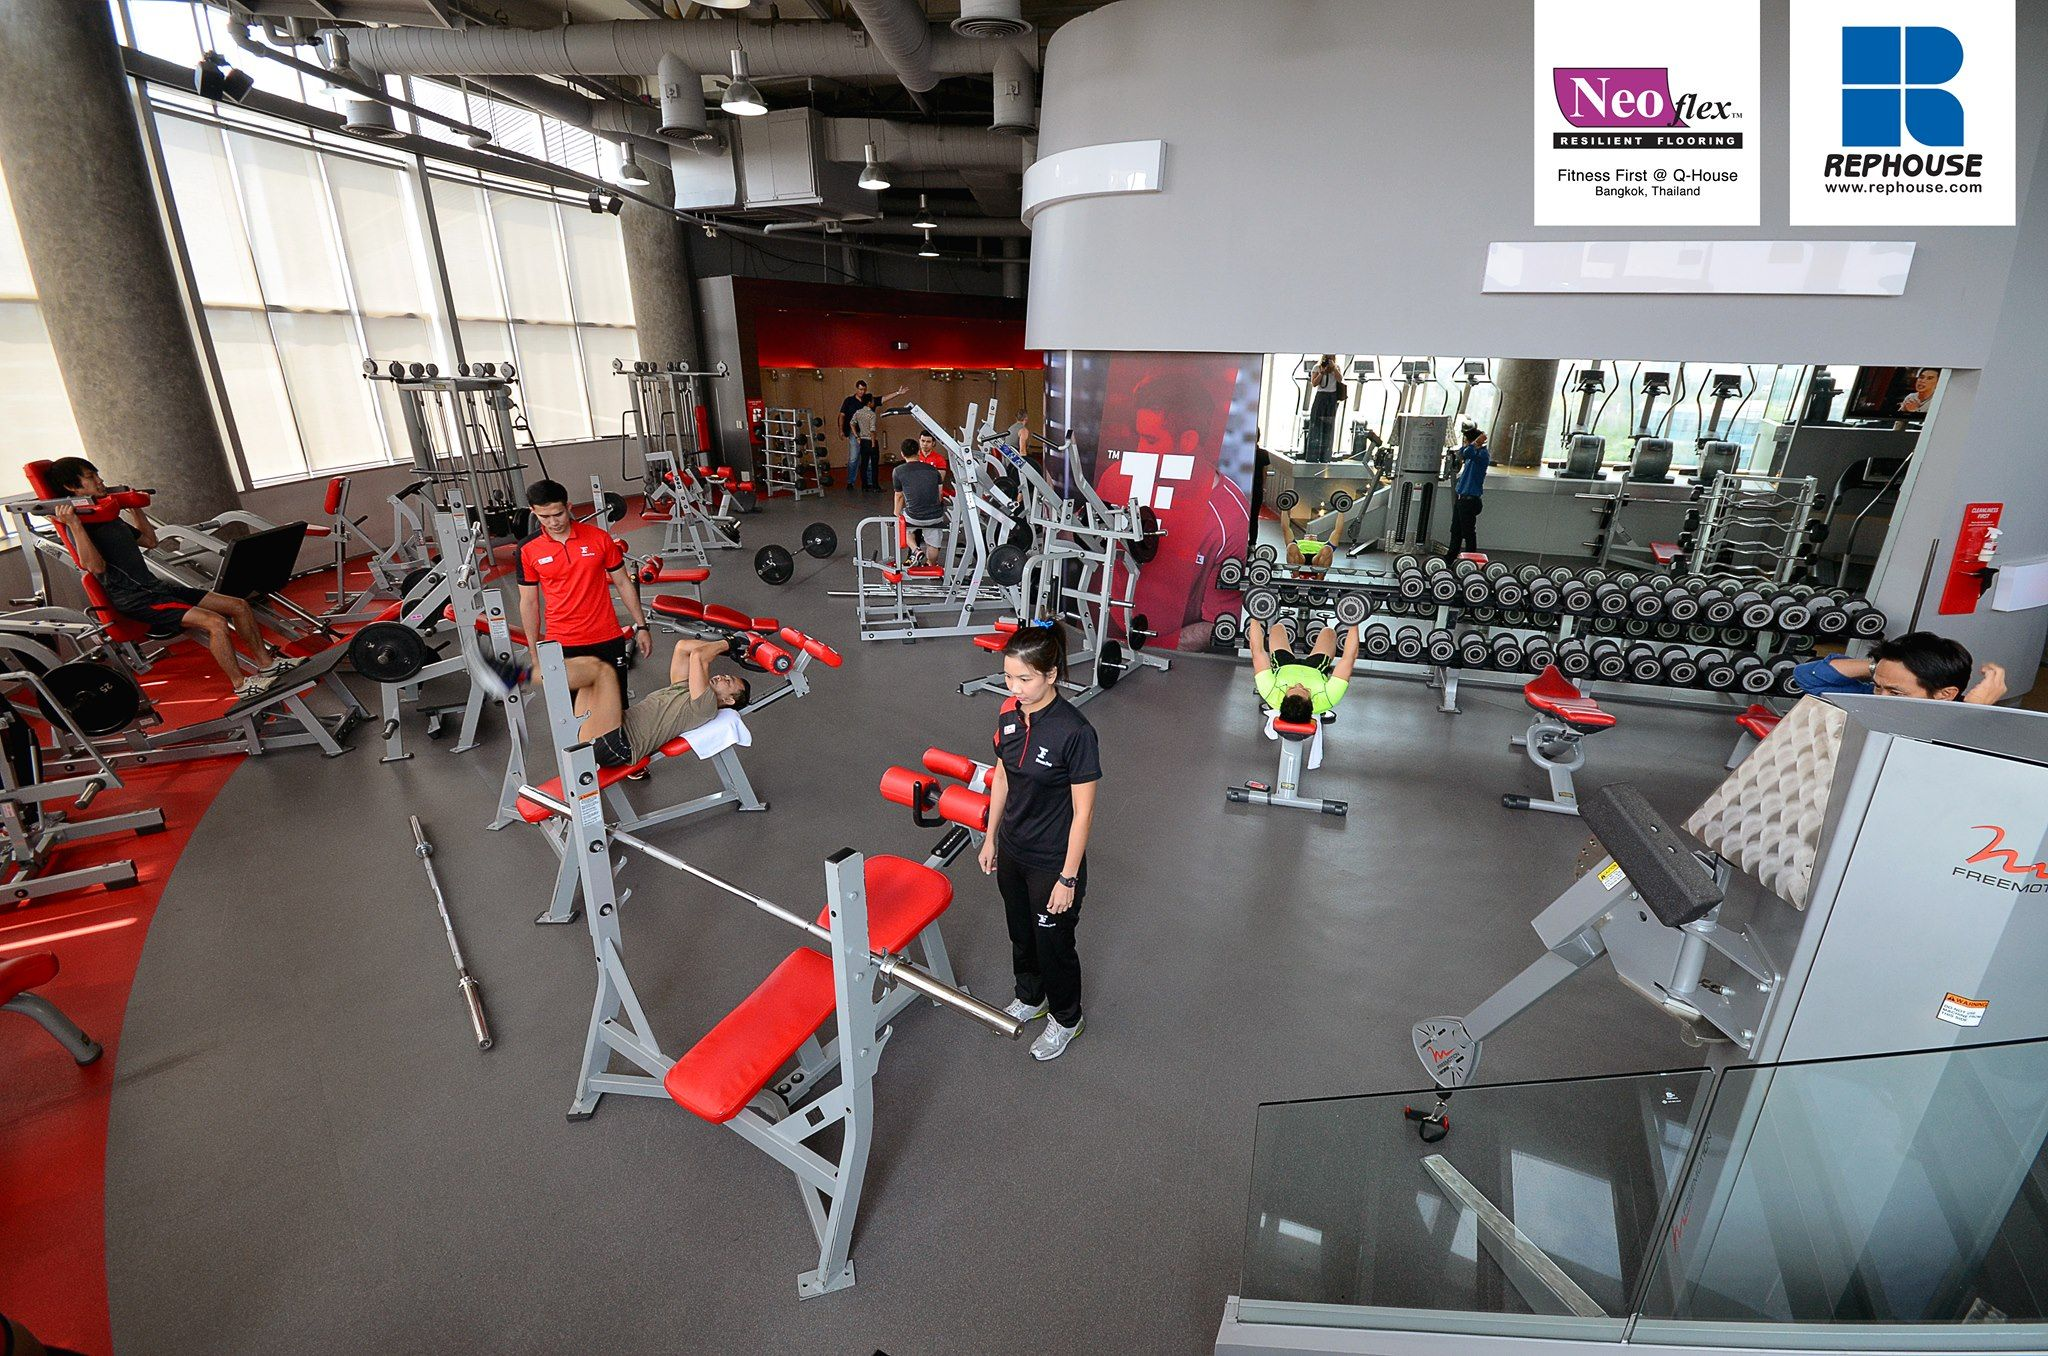 Neoflex 600 Series Reptiles With Graphics Fitness First Platinum Q House Lumpini Thailand Floor Workouts Gym Flooring Rubber Gym Flooring